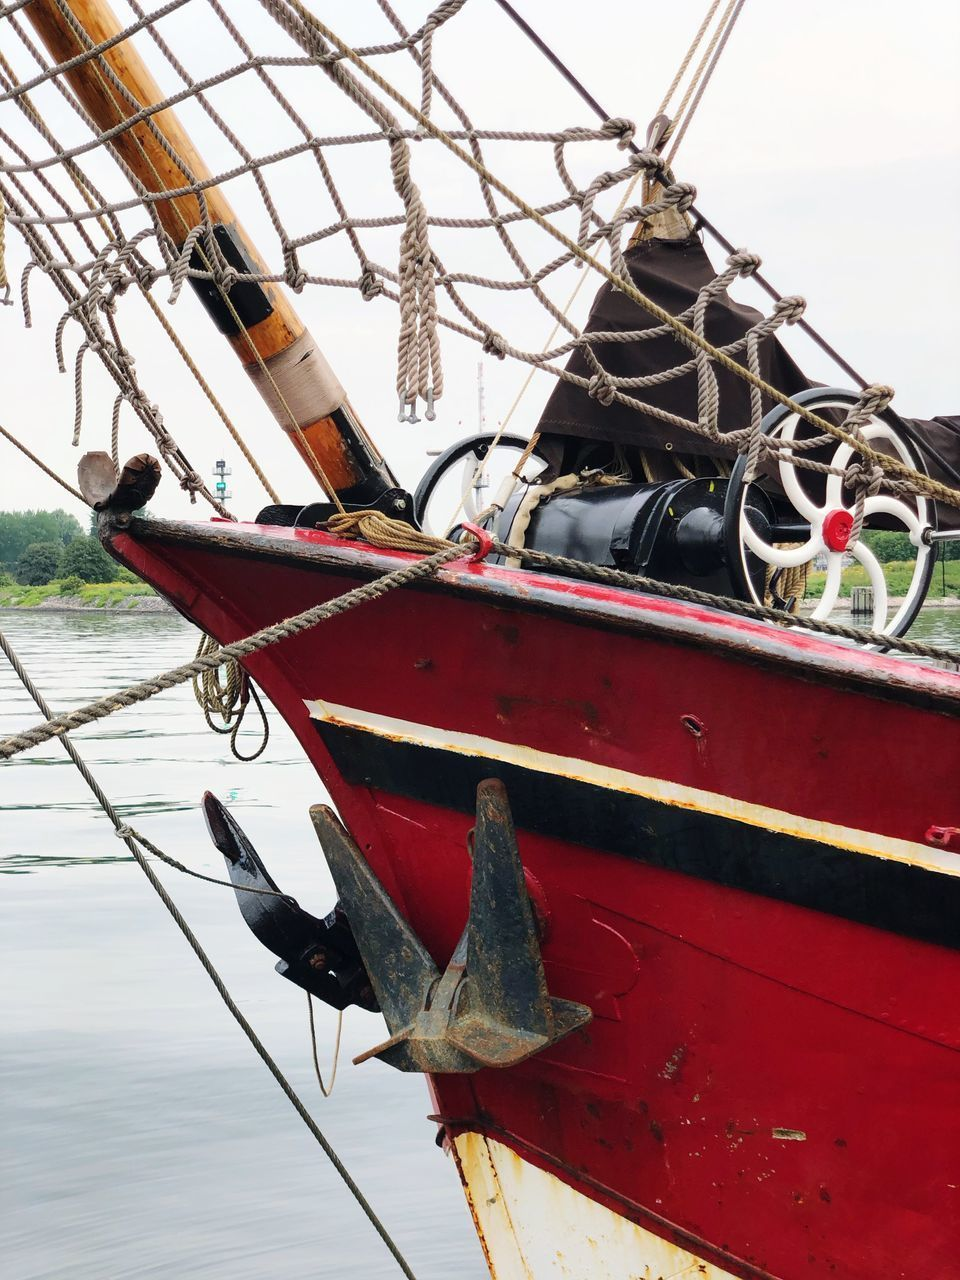 mode of transportation, nautical vessel, transportation, day, nature, water, no people, moored, sky, outdoors, metal, focus on foreground, rope, ship, close-up, red, wood - material, travel, lake, fishing boat, fishing industry